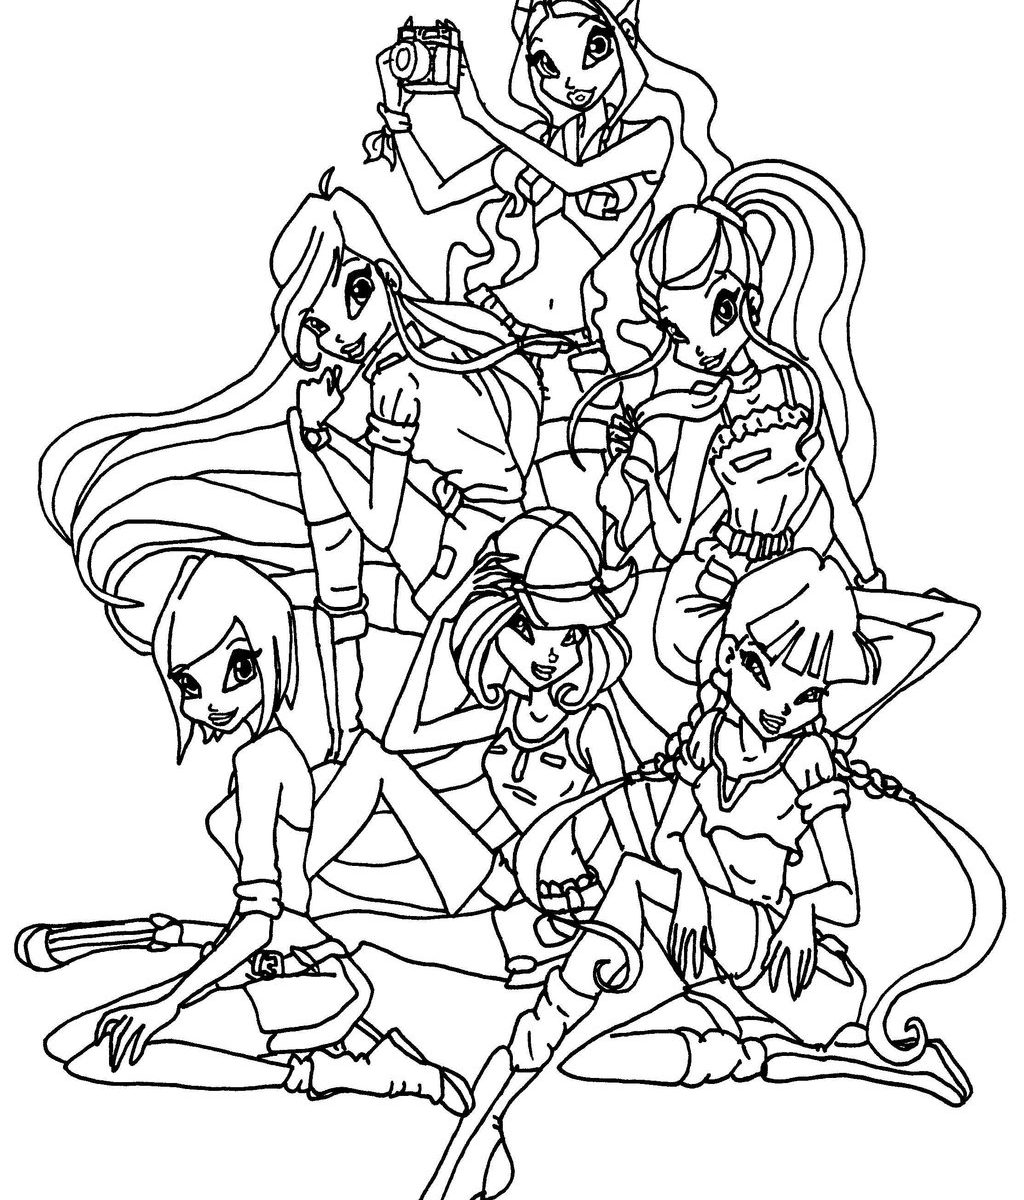 Inx Club Piff Pixie Coloring Page MediaTown 360 Winx Drawing 14